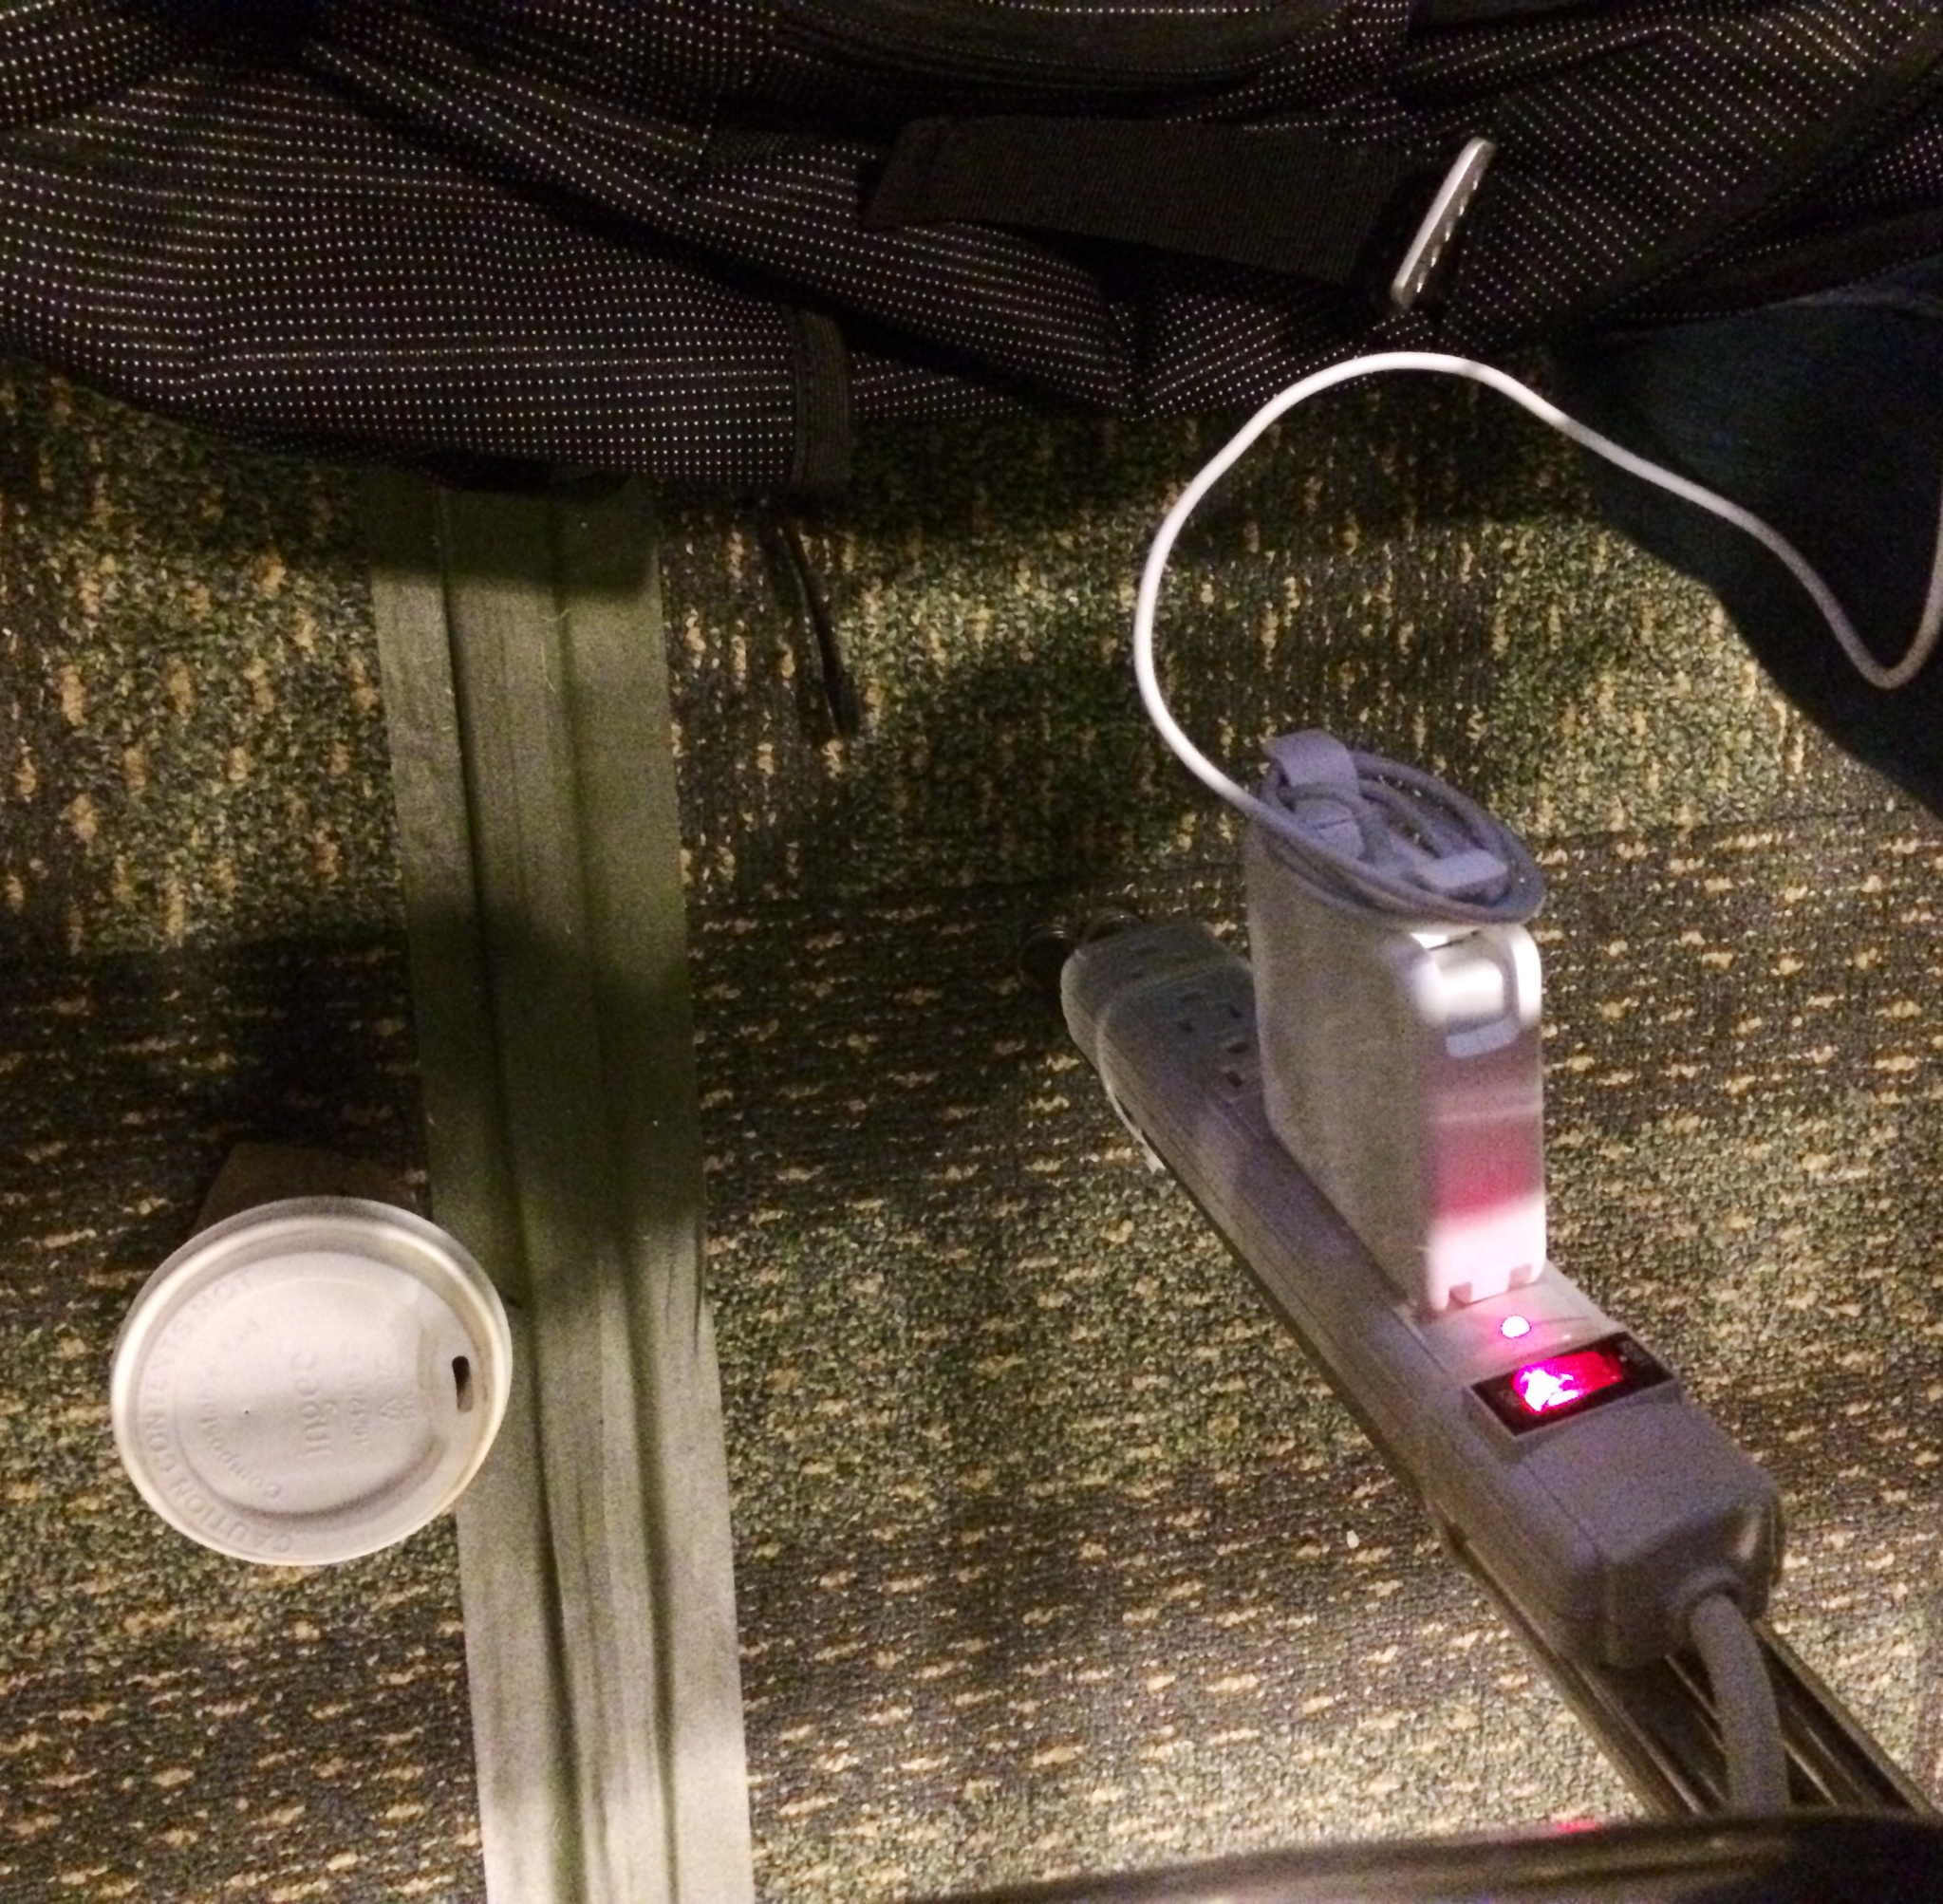 Under-chair power and coffee storage! I found this incredibly exciting. (K. Sliech, iPhone 5S)